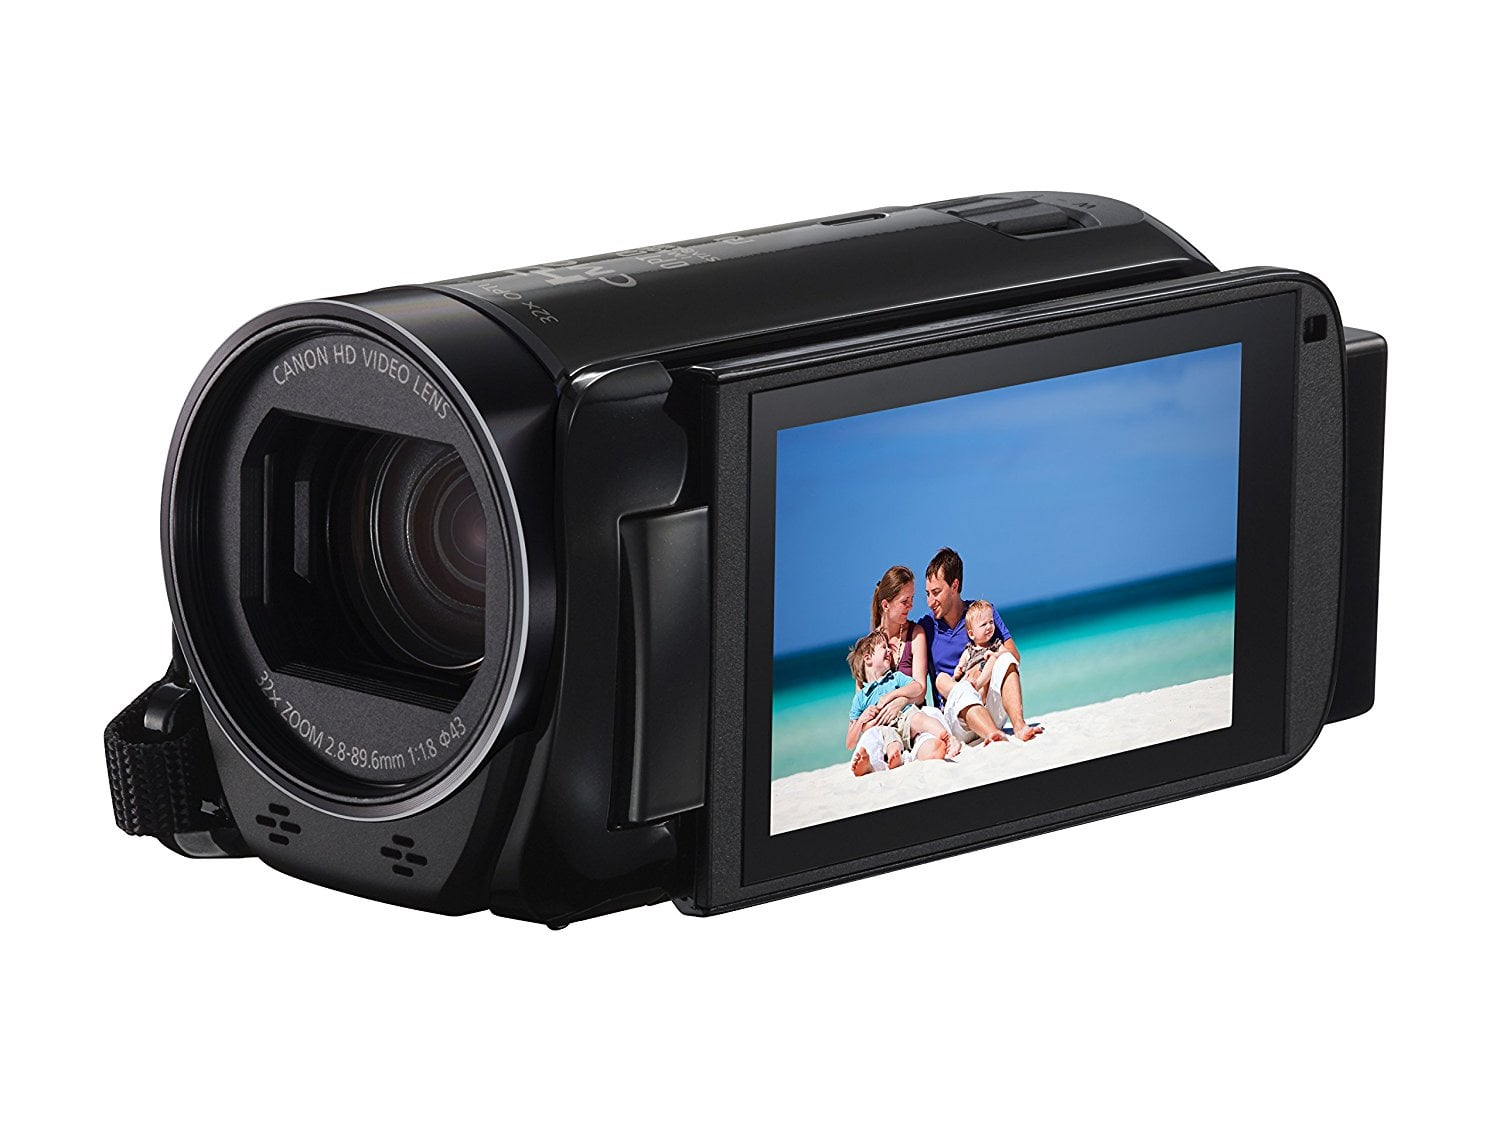 Canon Vixia hf r70 Review – The Beast of Video Recording